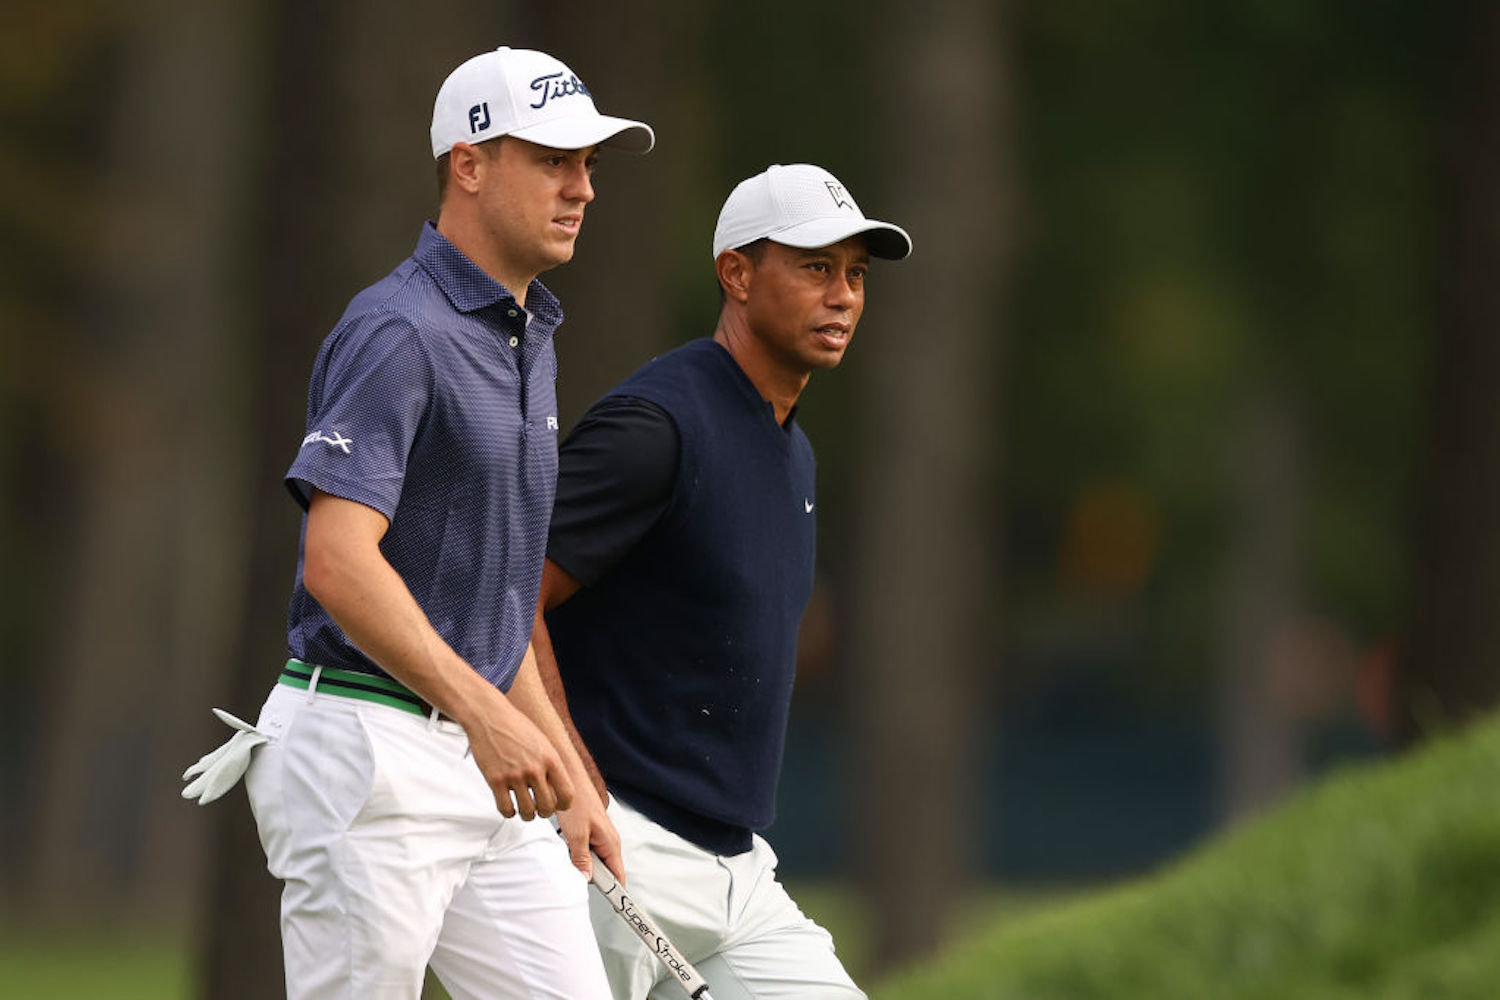 Justin Thomas and Tiger Woods are now good friends, but his first visit to the big cat's house didn't go as well as he hoped.